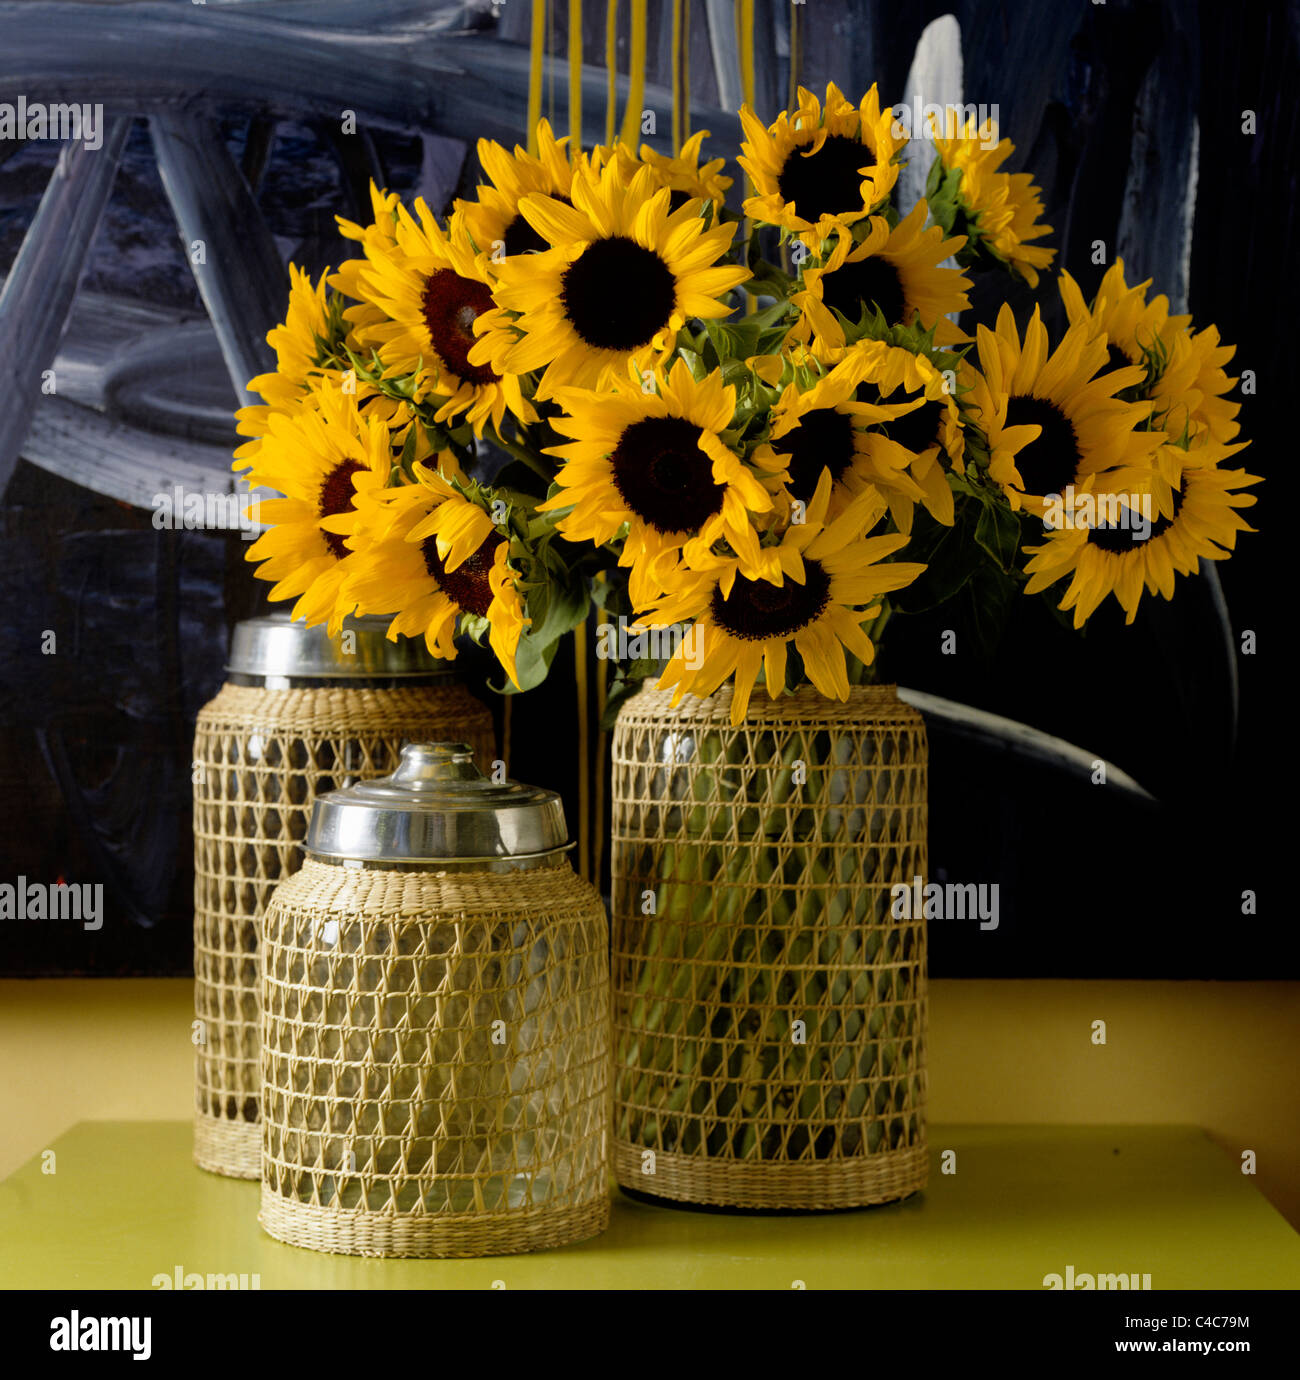 Sunflowers in glass jar with woven mesh - Stock Image